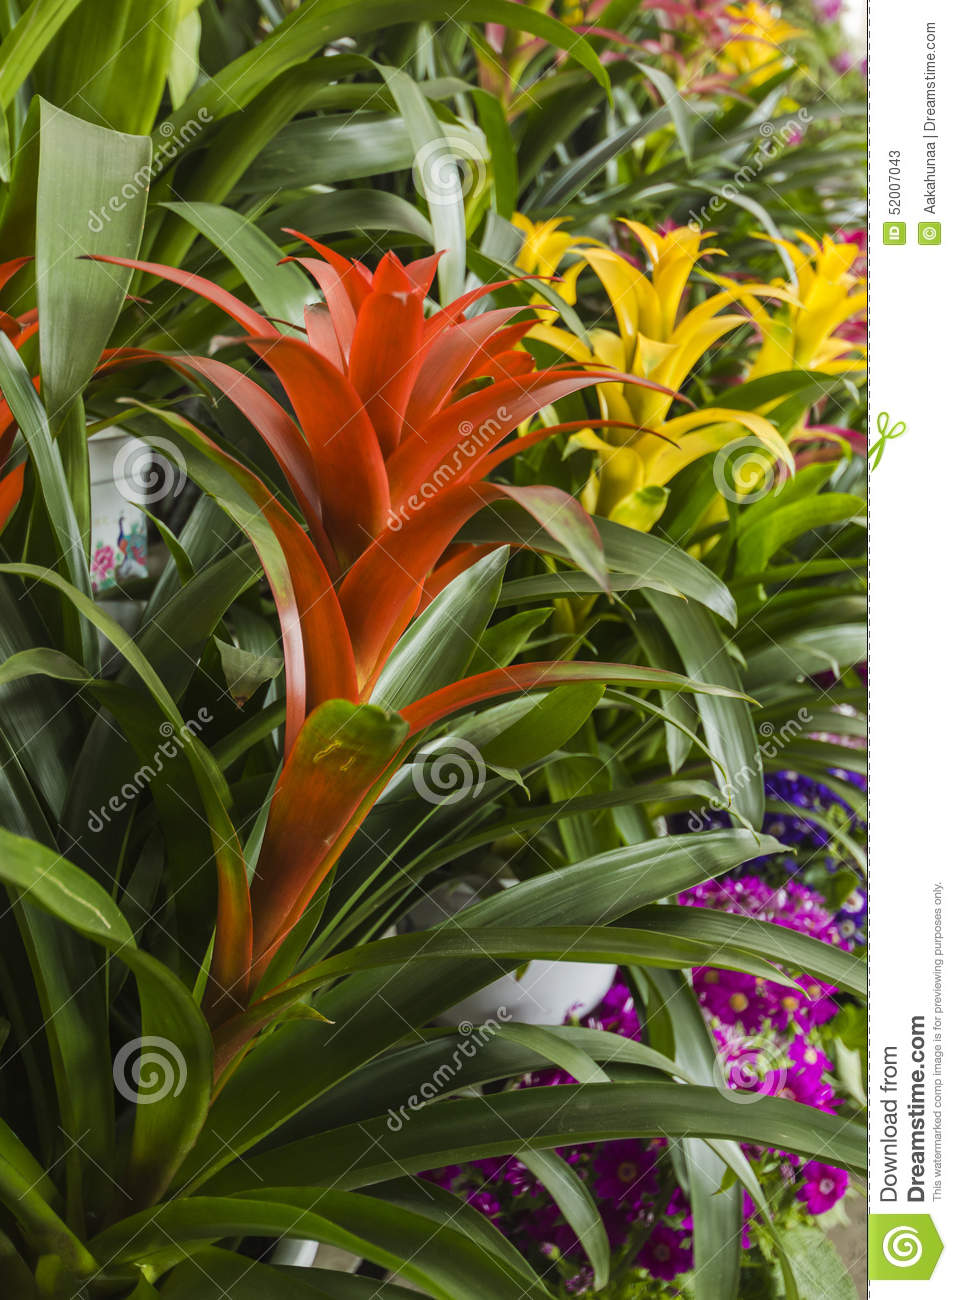 Pineapple flower stock image. Image of houseplant, nature - 52007043